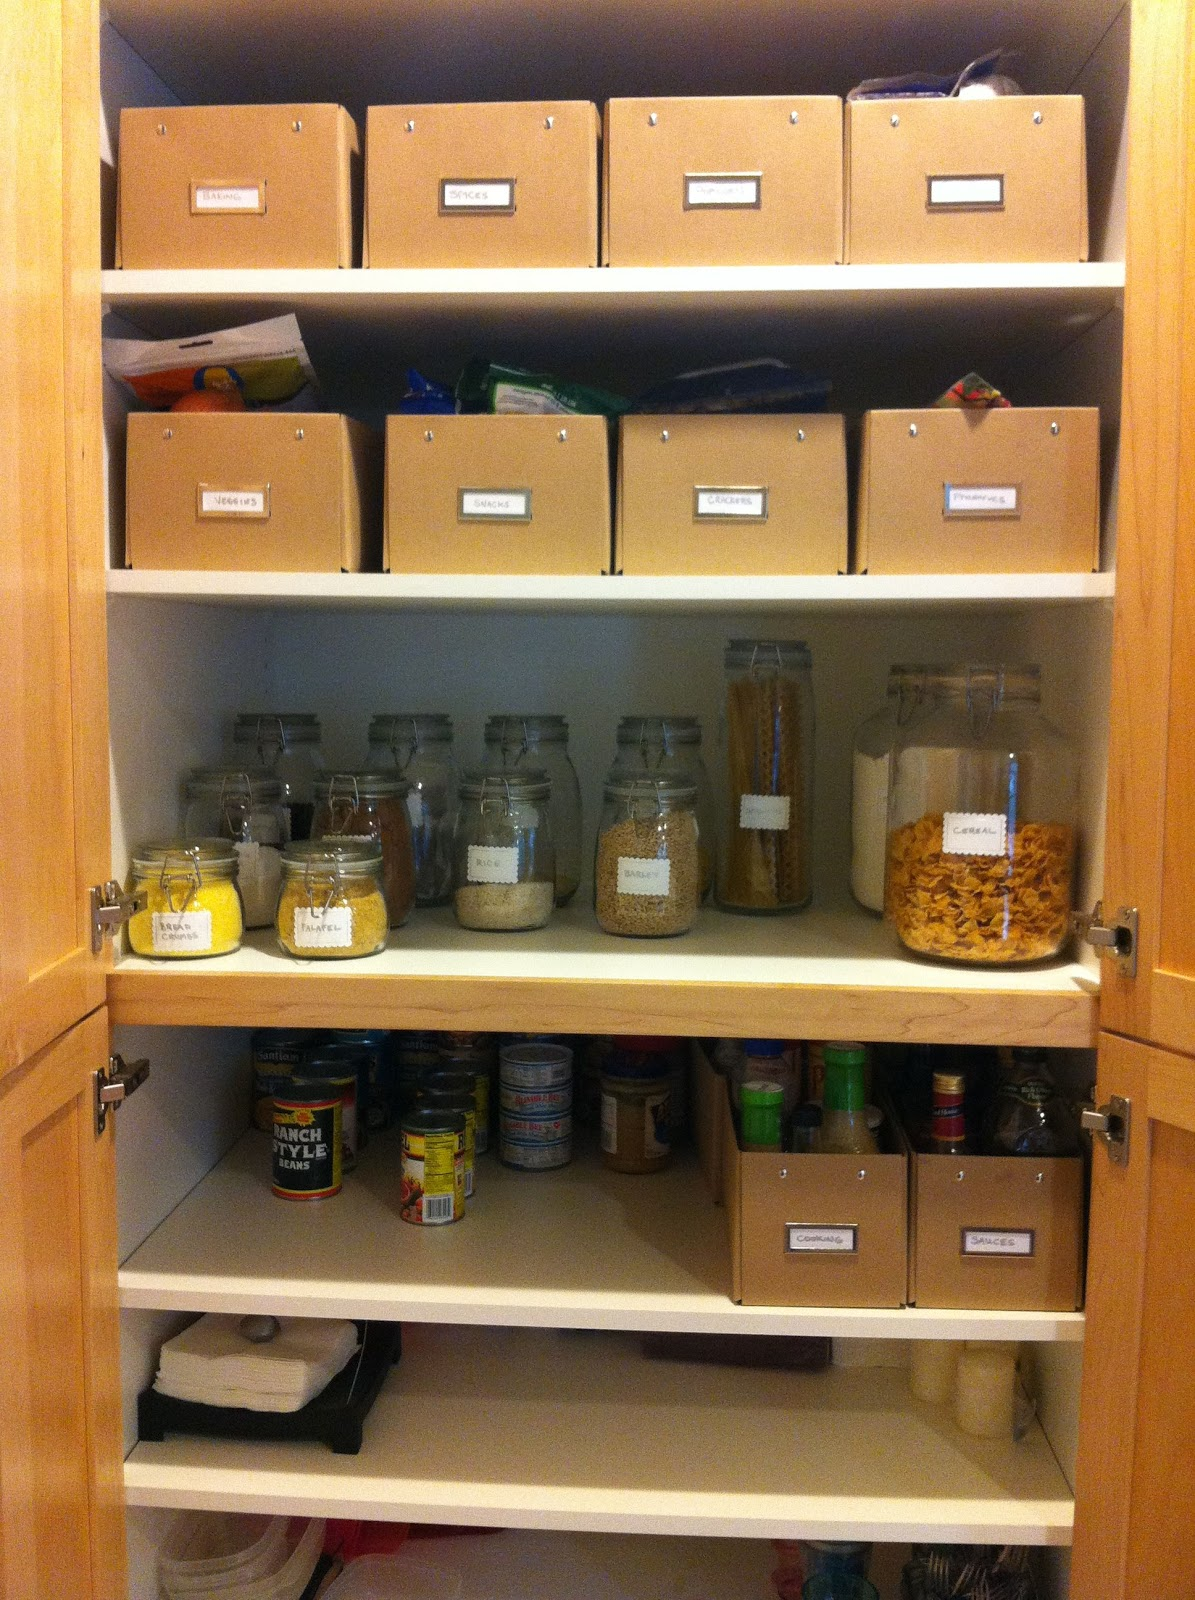 Kitchen Cabinet Organization Rooms To Go Sets Home Decor Diy Ideas Organizing Grocery Cabinets